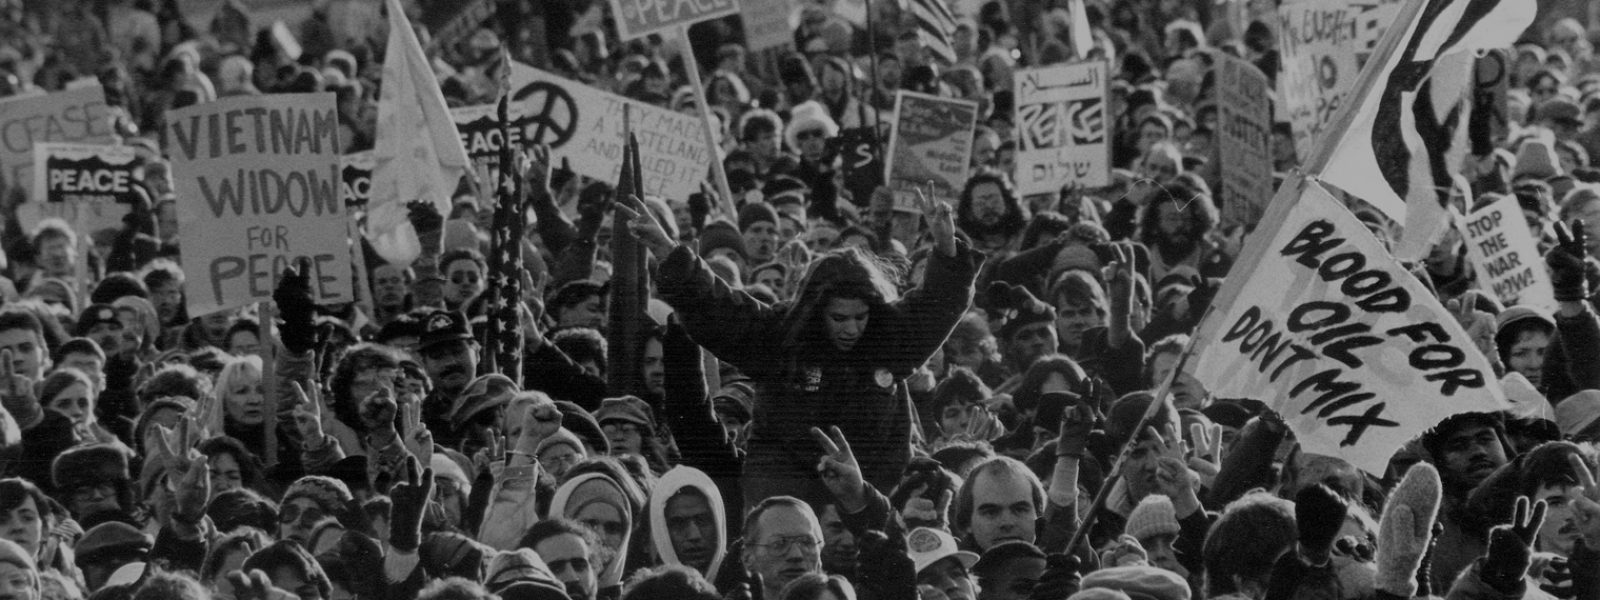 Resist started to support draft resistance and many antiwar demonstration during the Vietnam War